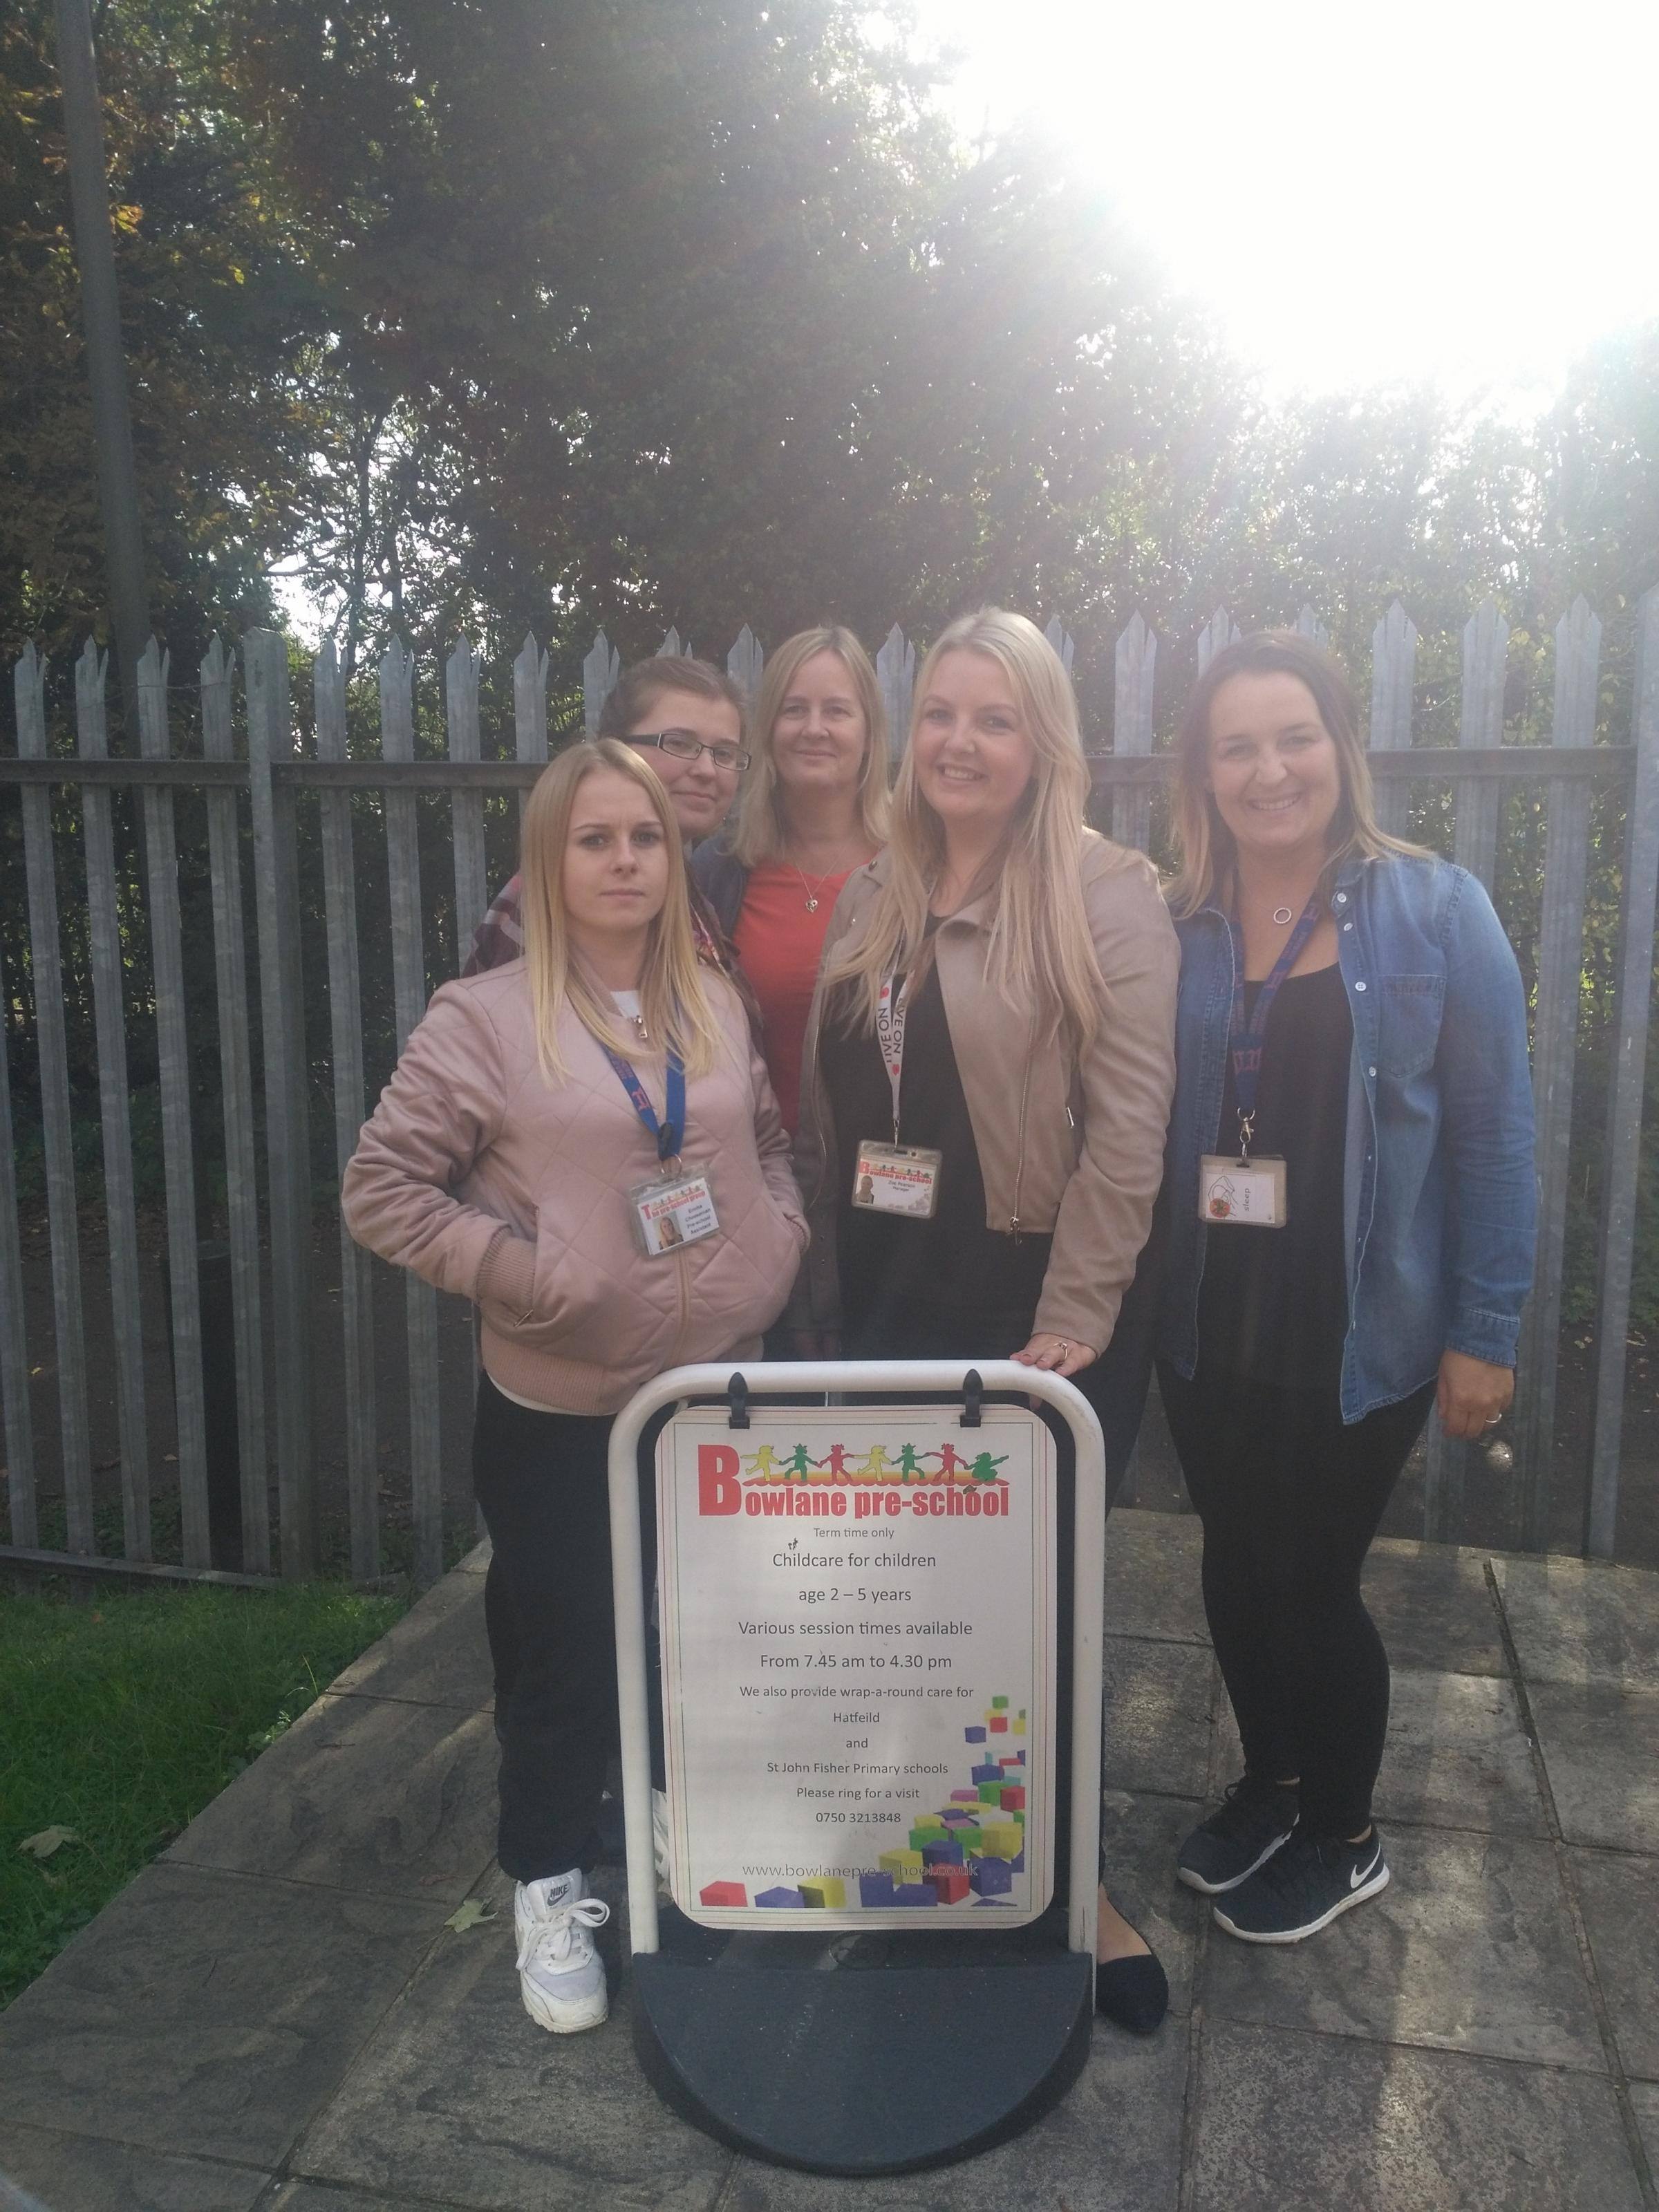 Staff at the 'outstanding' pre-school: (from left to right) Emma Cheesman, Chloe Barclay, Janet Rolfe, Zoe Pearson and Stacey Perry